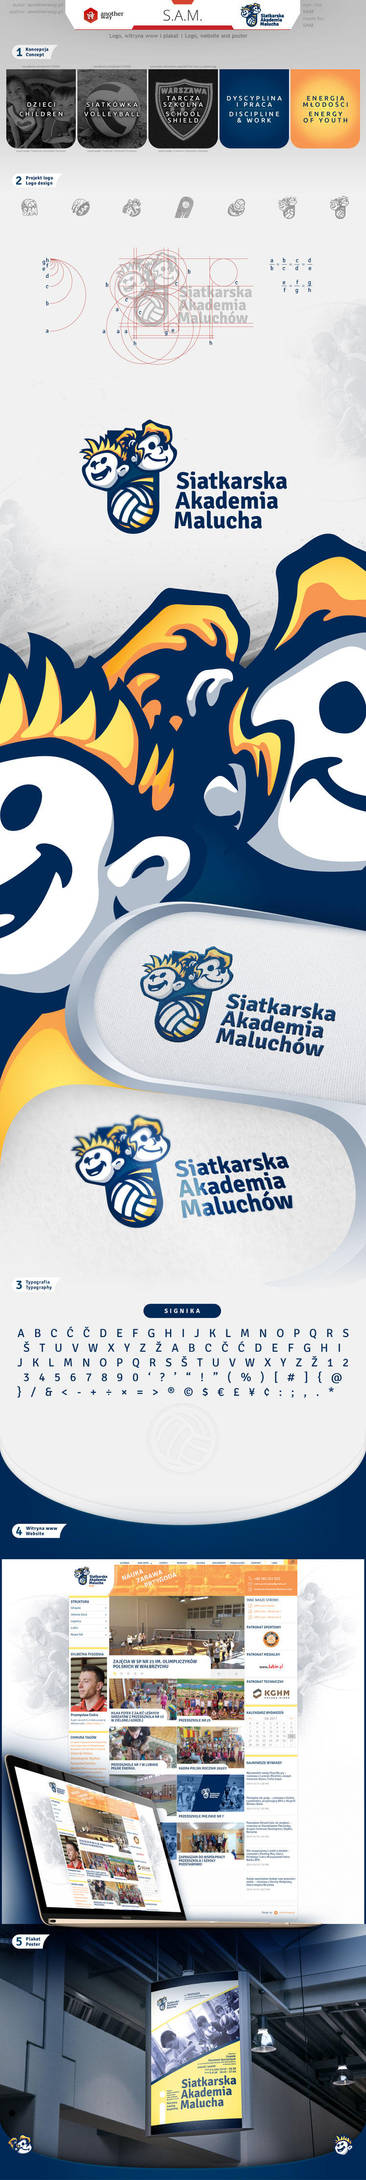 Volleyball Children Academy -Logo, website, poster by KonaRos